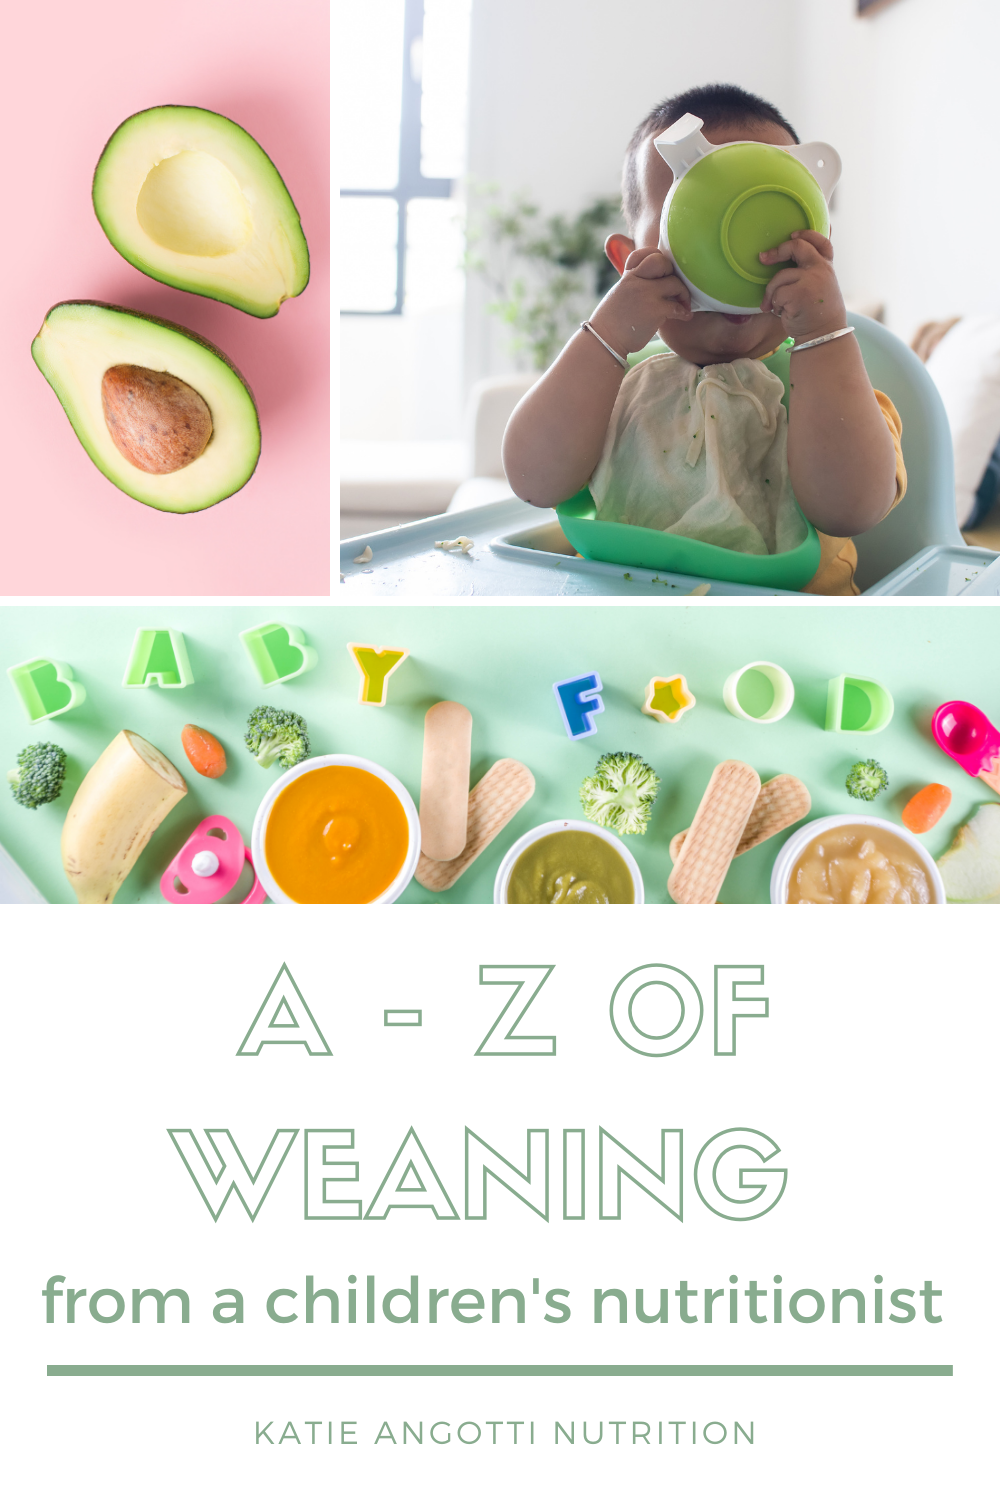 Baby eating food from bowl, jars of baby food and finger foods for introducing solids